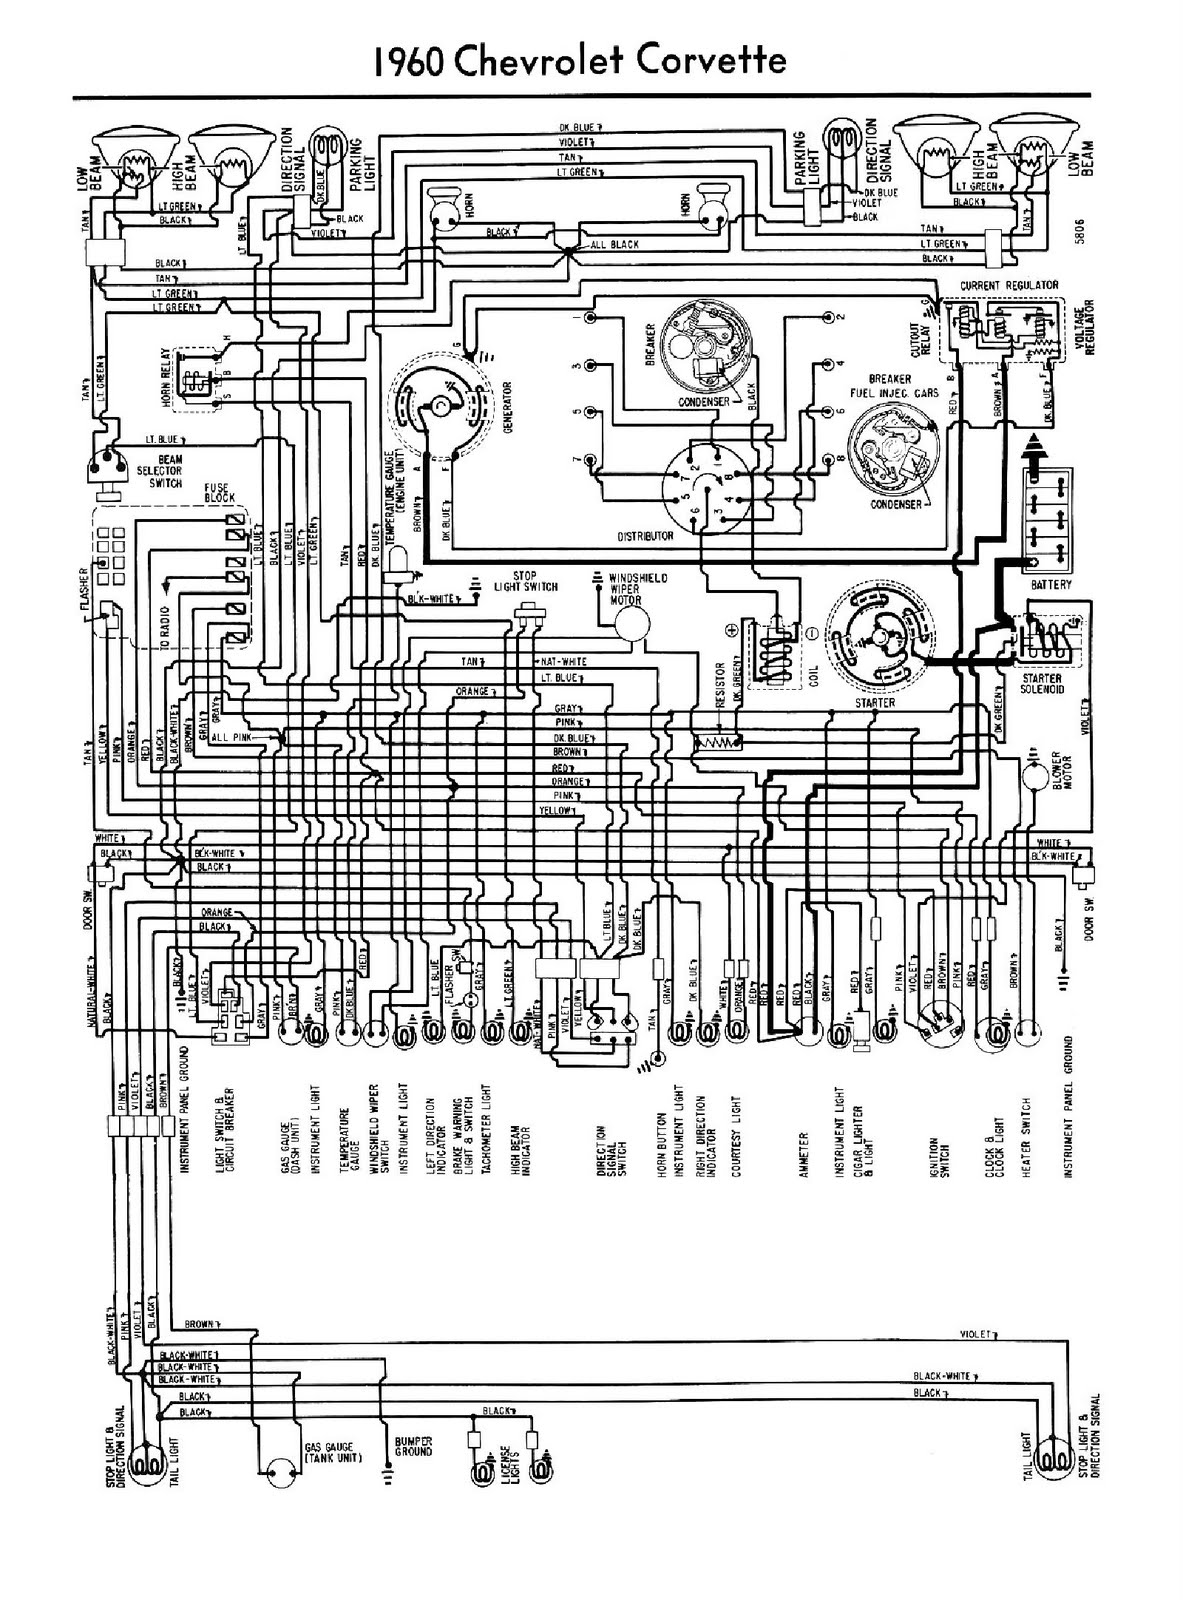 Chevrolet Corvette Wiring on 1984 Corvette Fuse Diagram